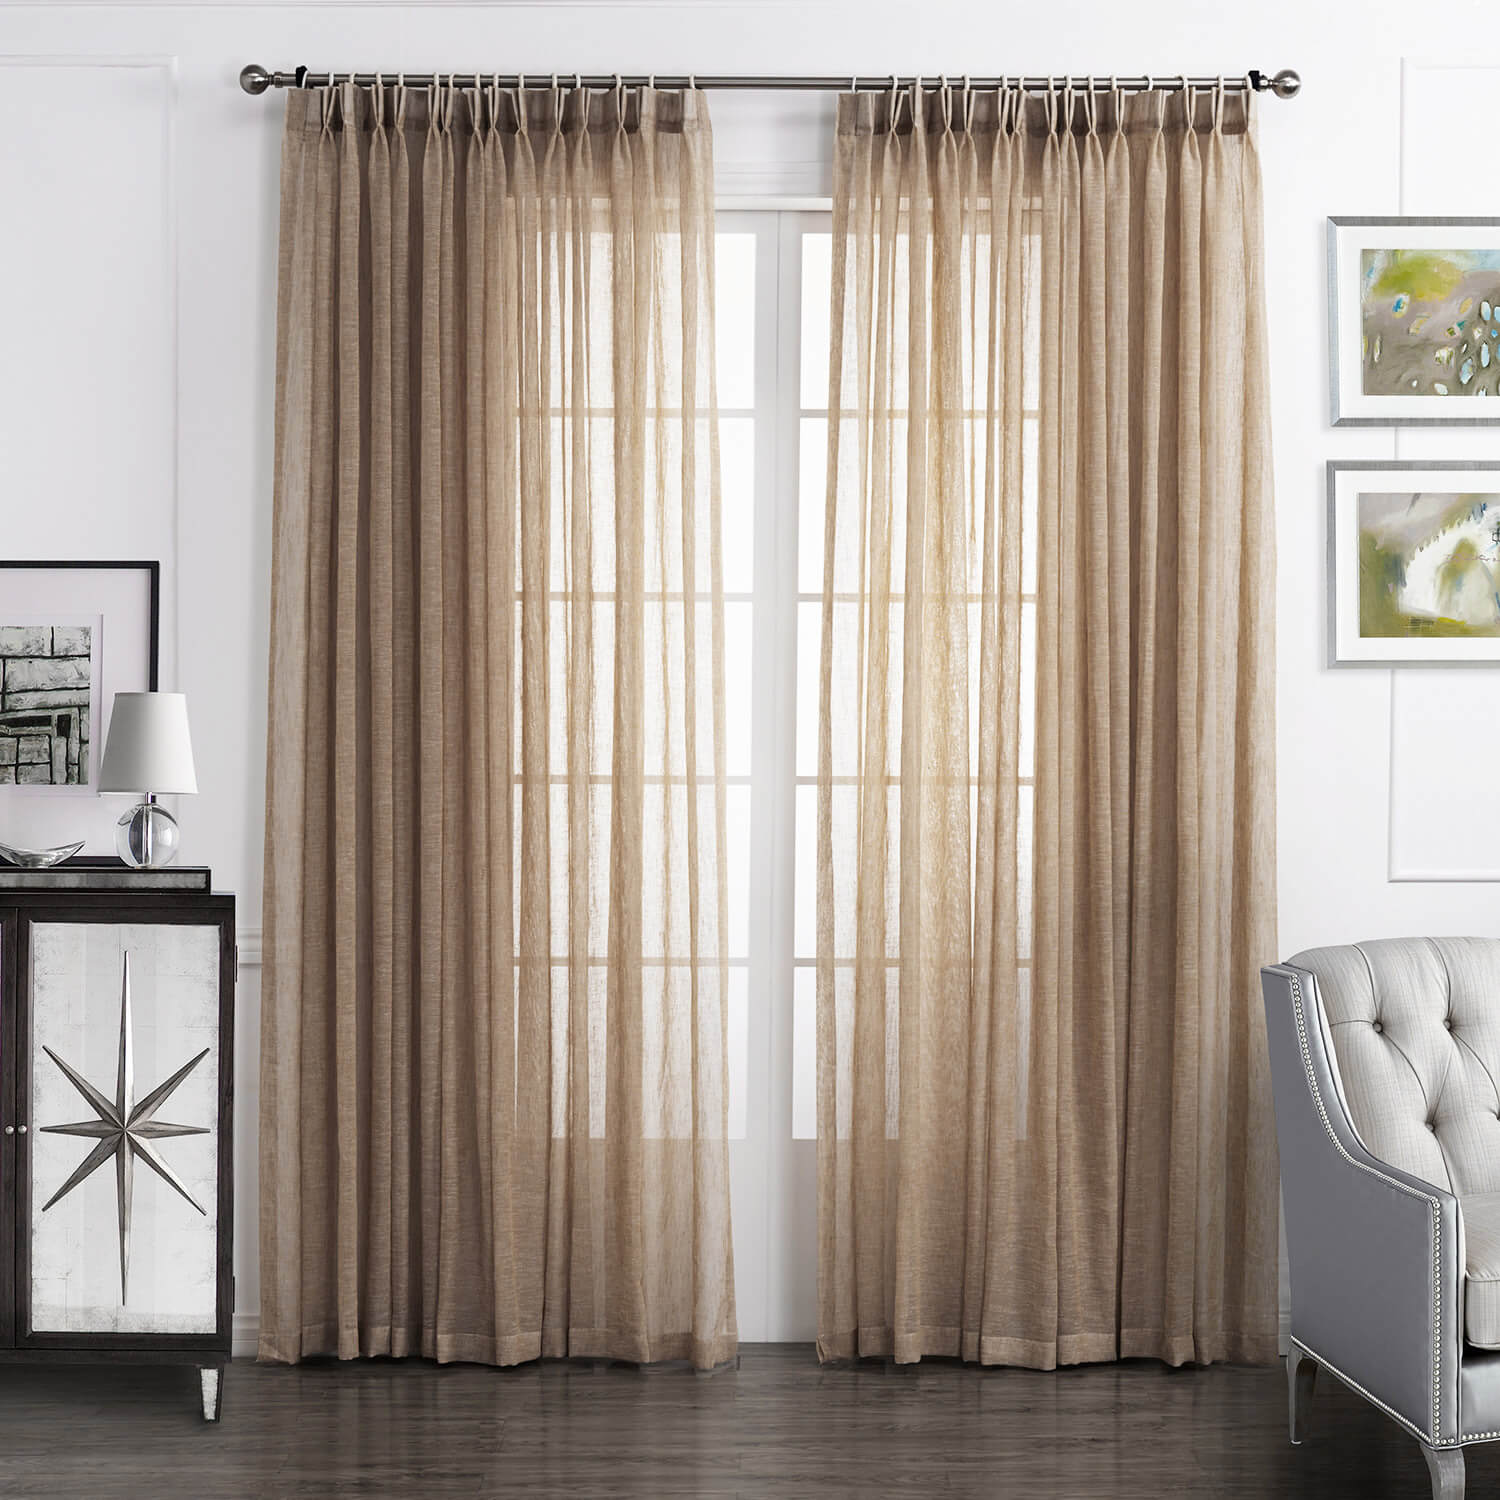 Tan Beige Linen Sheer Curtains For Living Room 2 Panels Anady Top